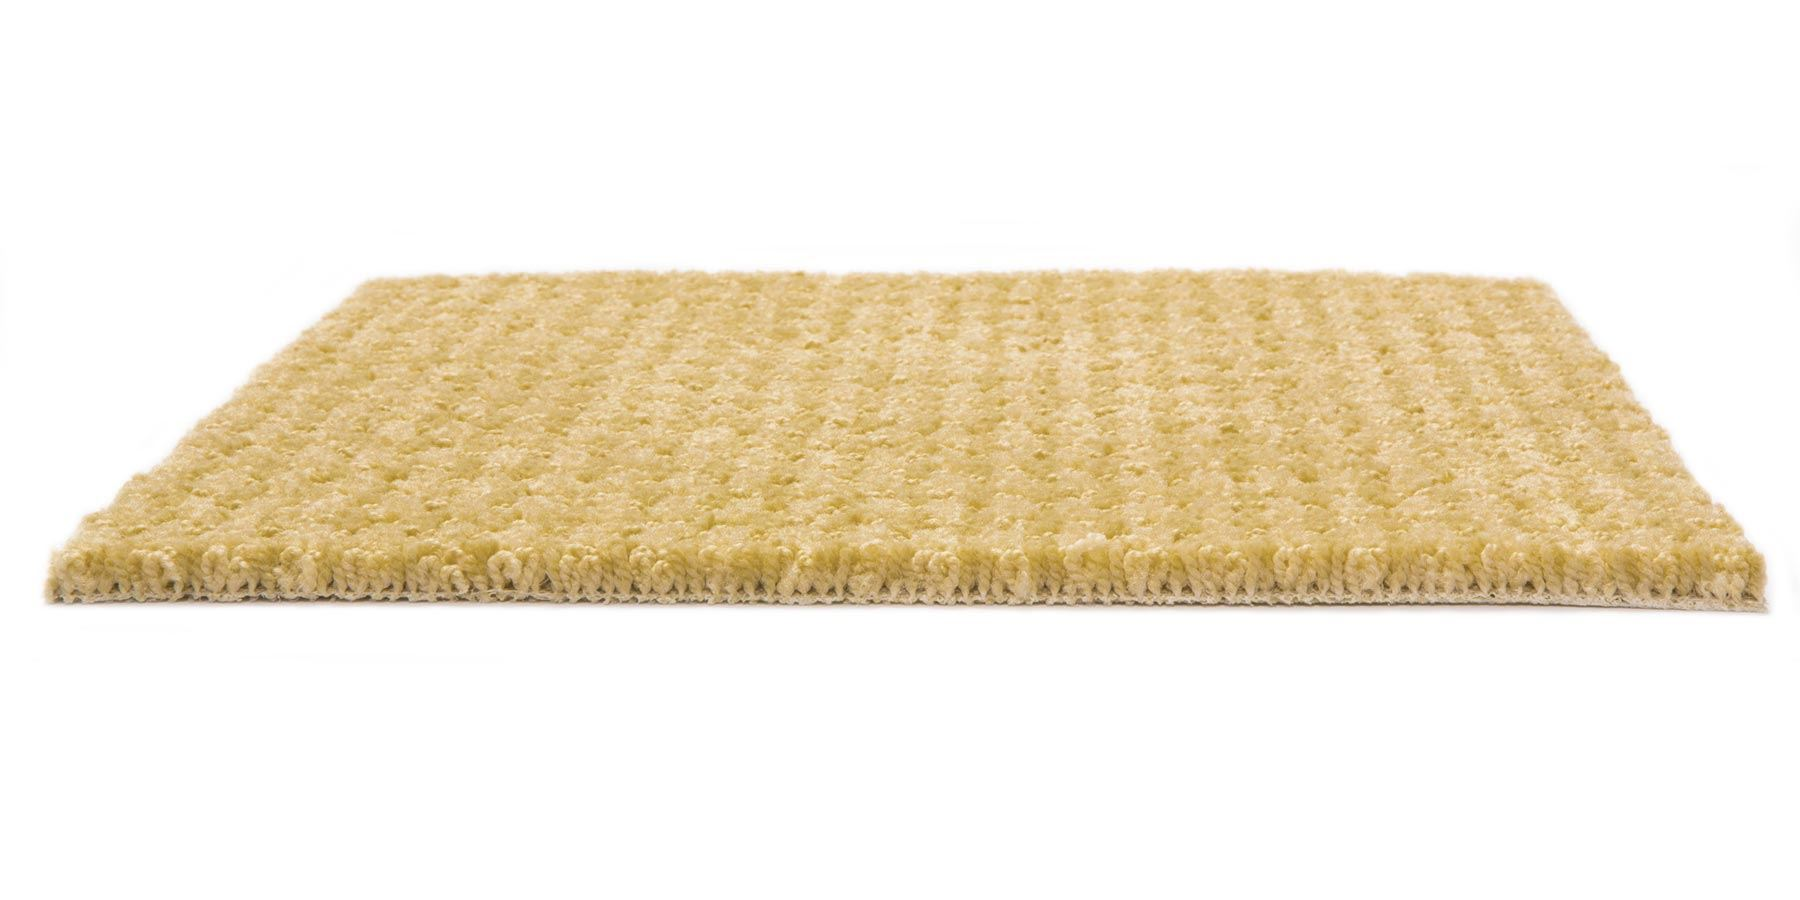 Dont Stop Believin Golden Fleece Carpet